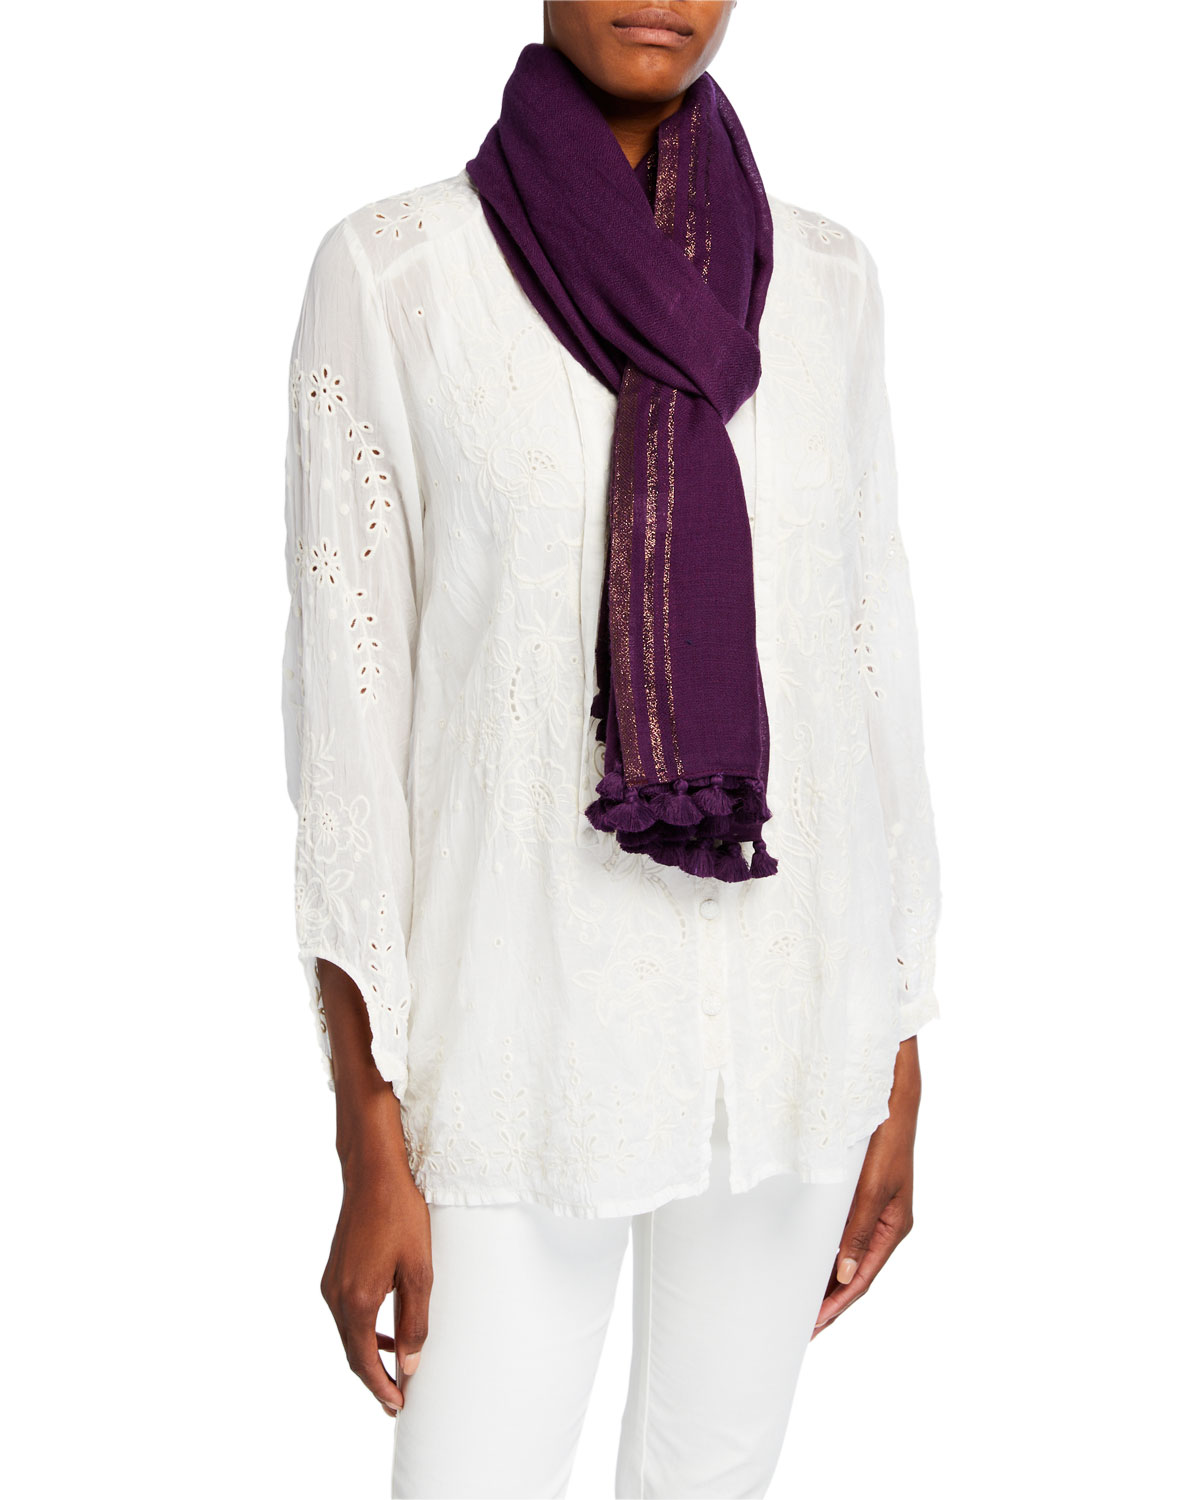 Eileen Fisher Accessories TASSELED WOOL SHIMMER SCARF